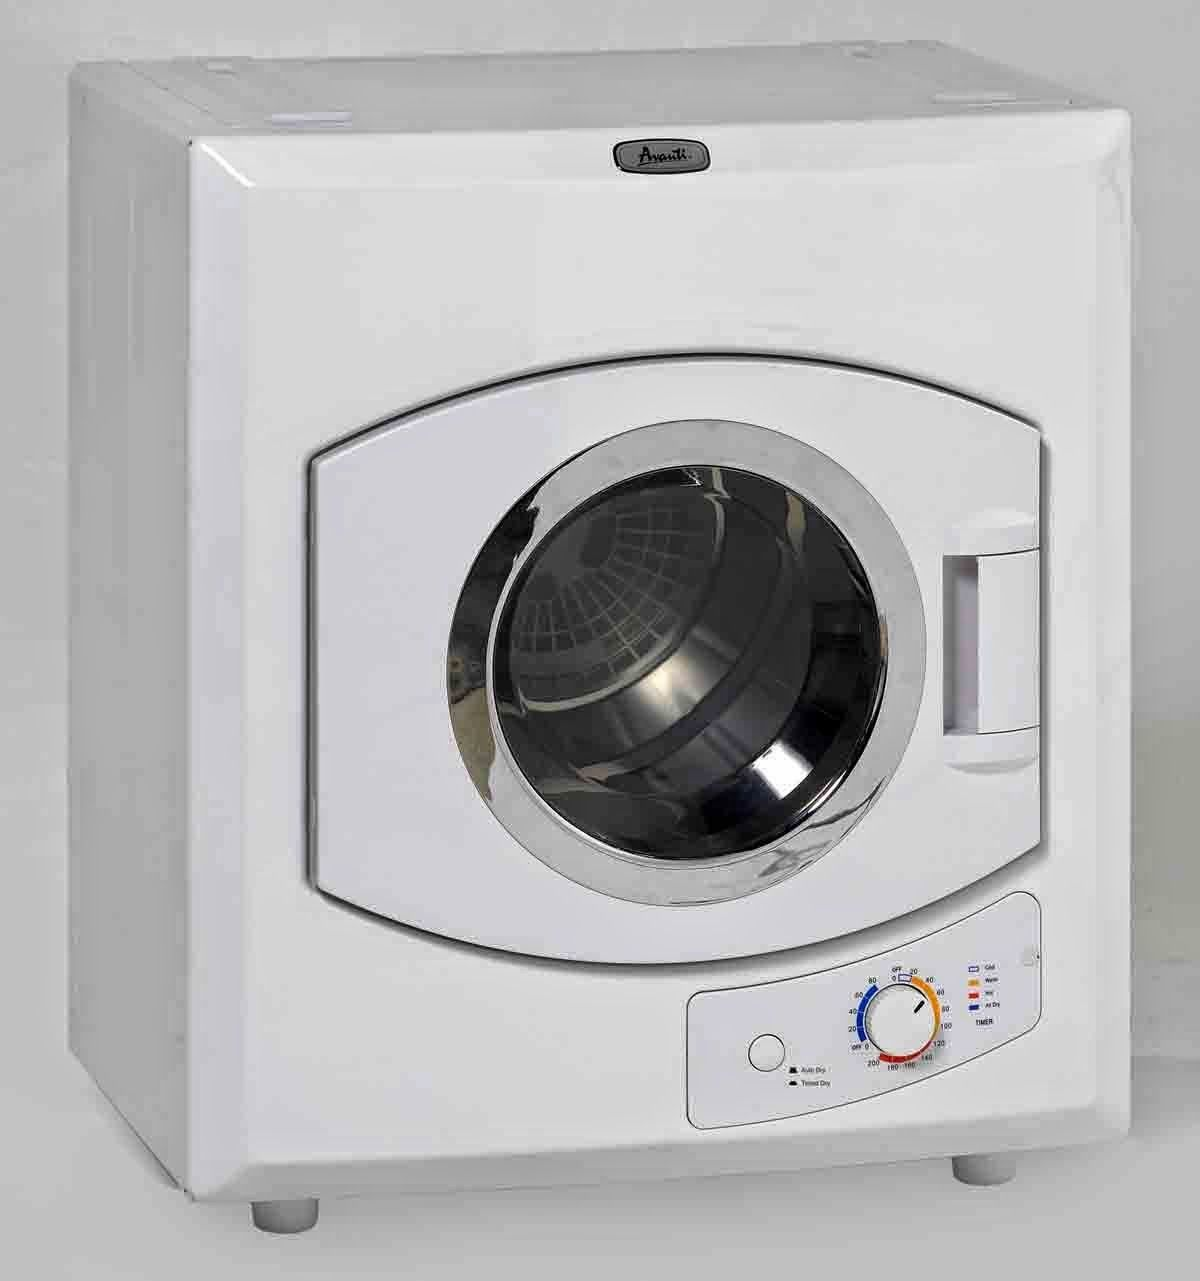 Artwork of Perfect Used Apartment Size Washer and Dryer | Fresh ...